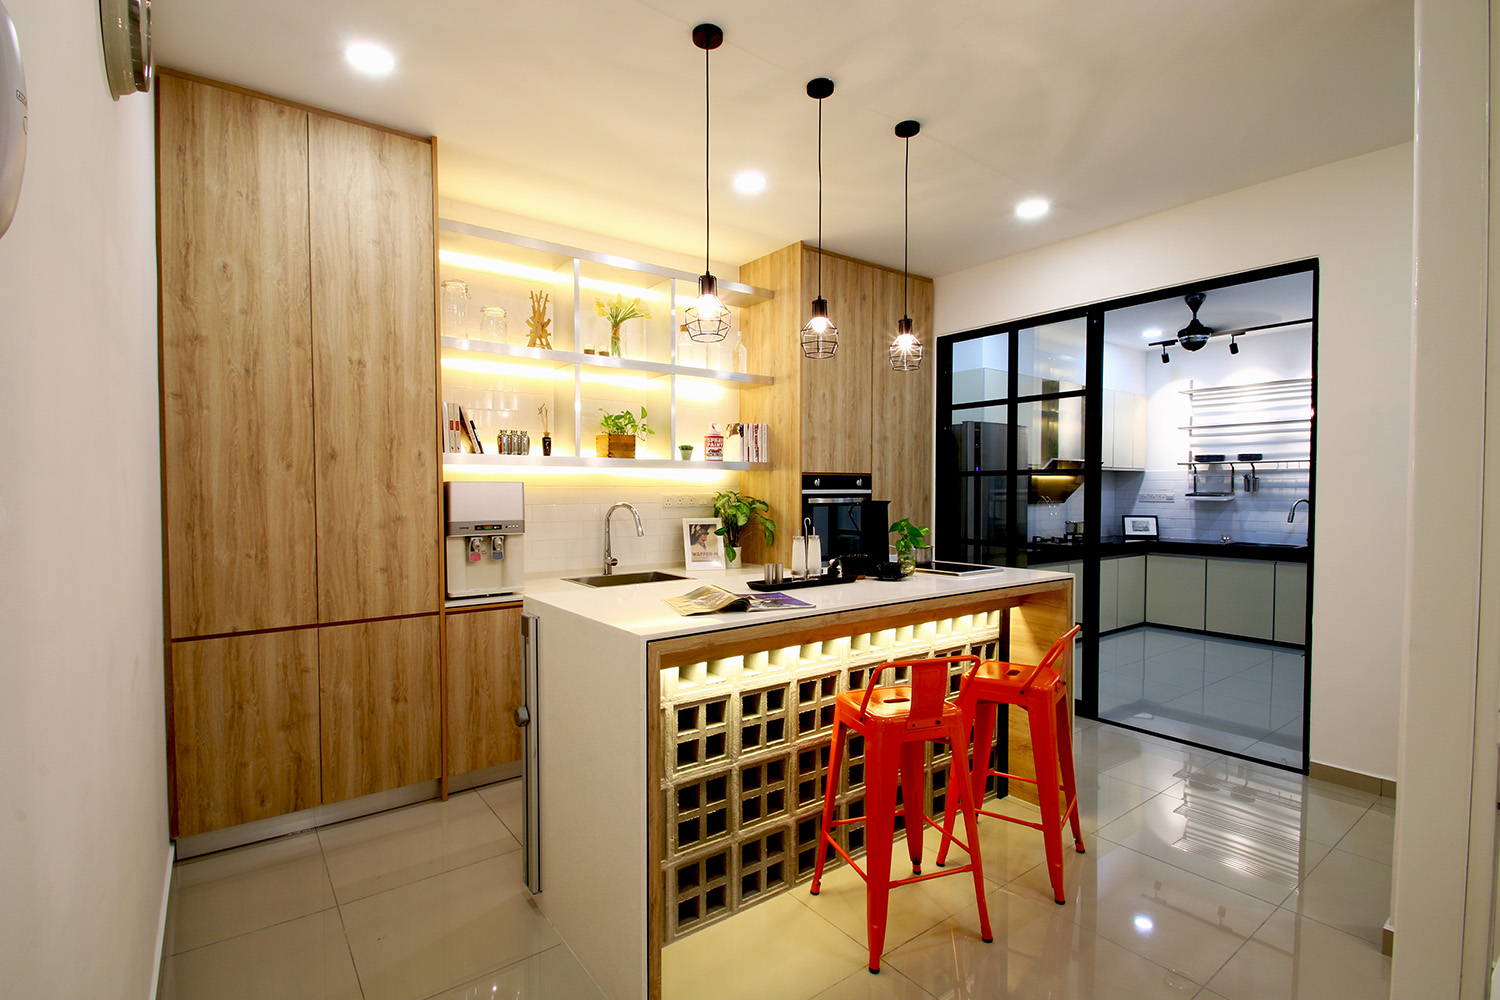 14 Practical Wet And Dry Kitchens In Malaysia Recommend My Kitchen Designs Layout Kitchen Ideas Malaysia Interior Design Kitchen